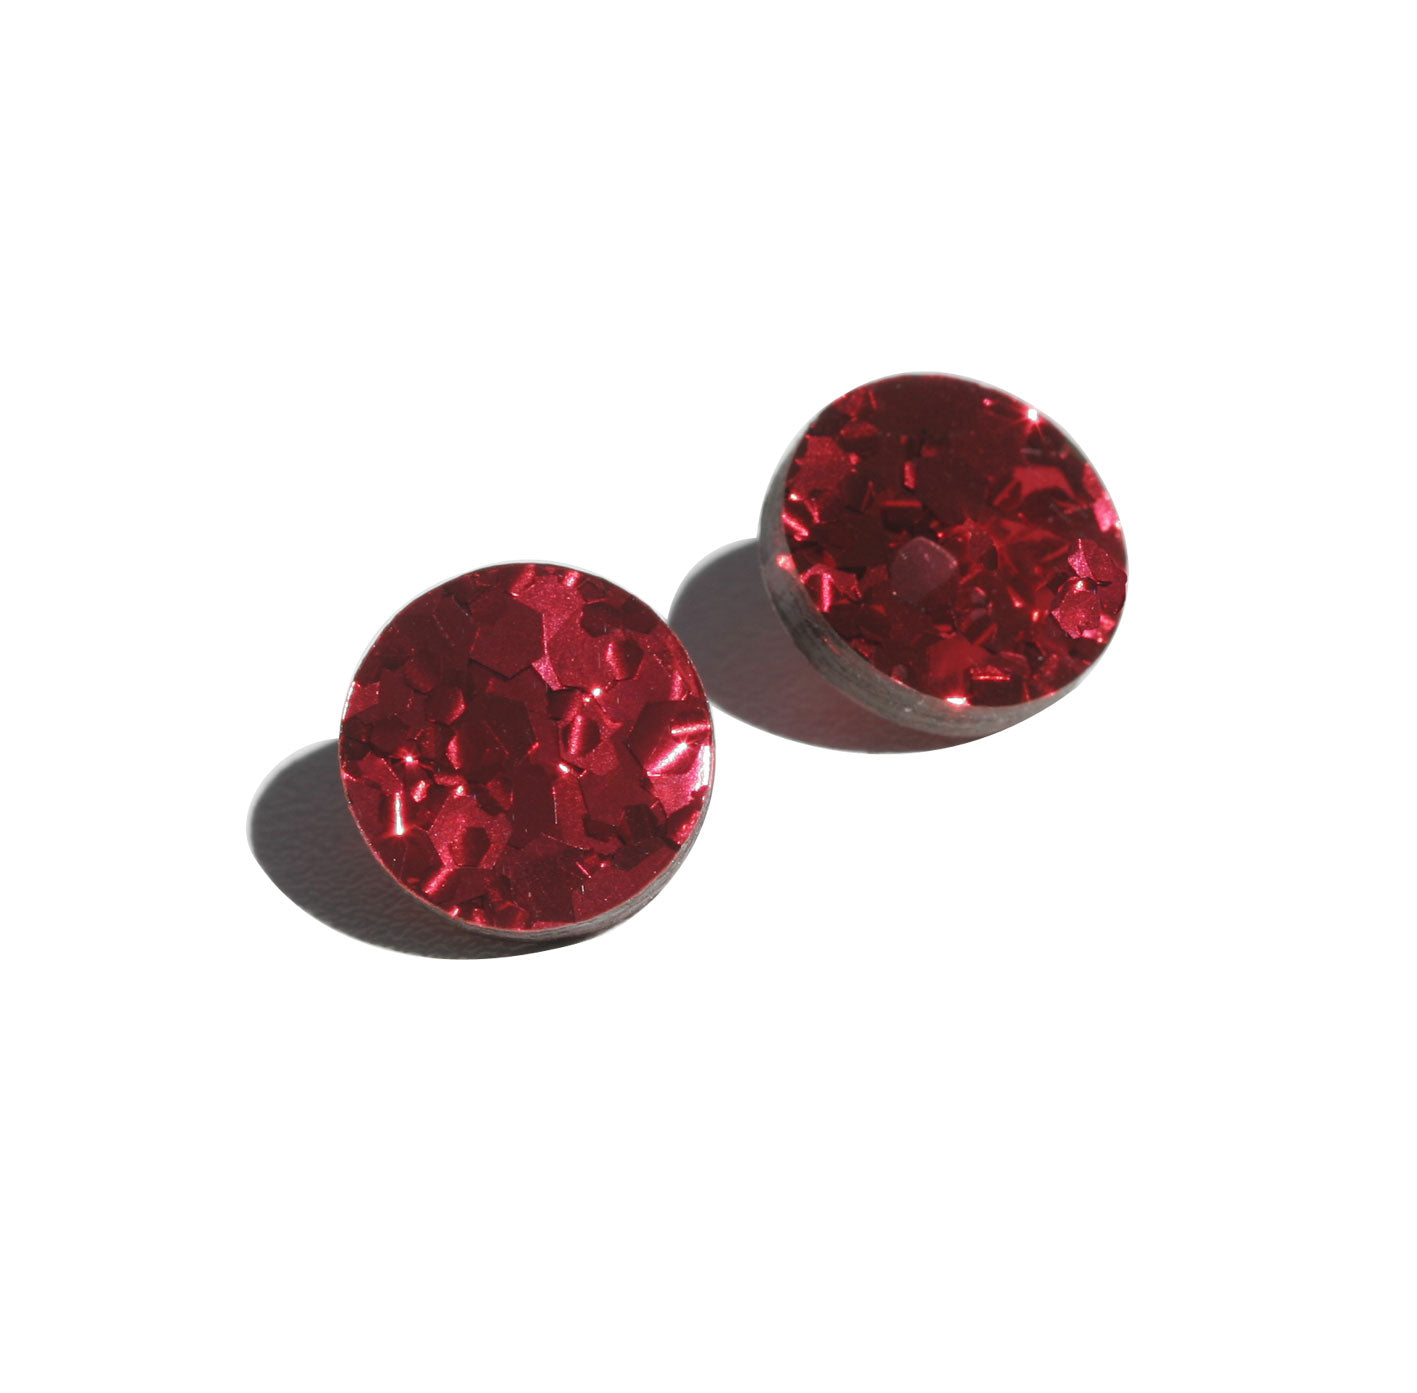 london glitter red products web of esoteric earrings geometric copy stud resin